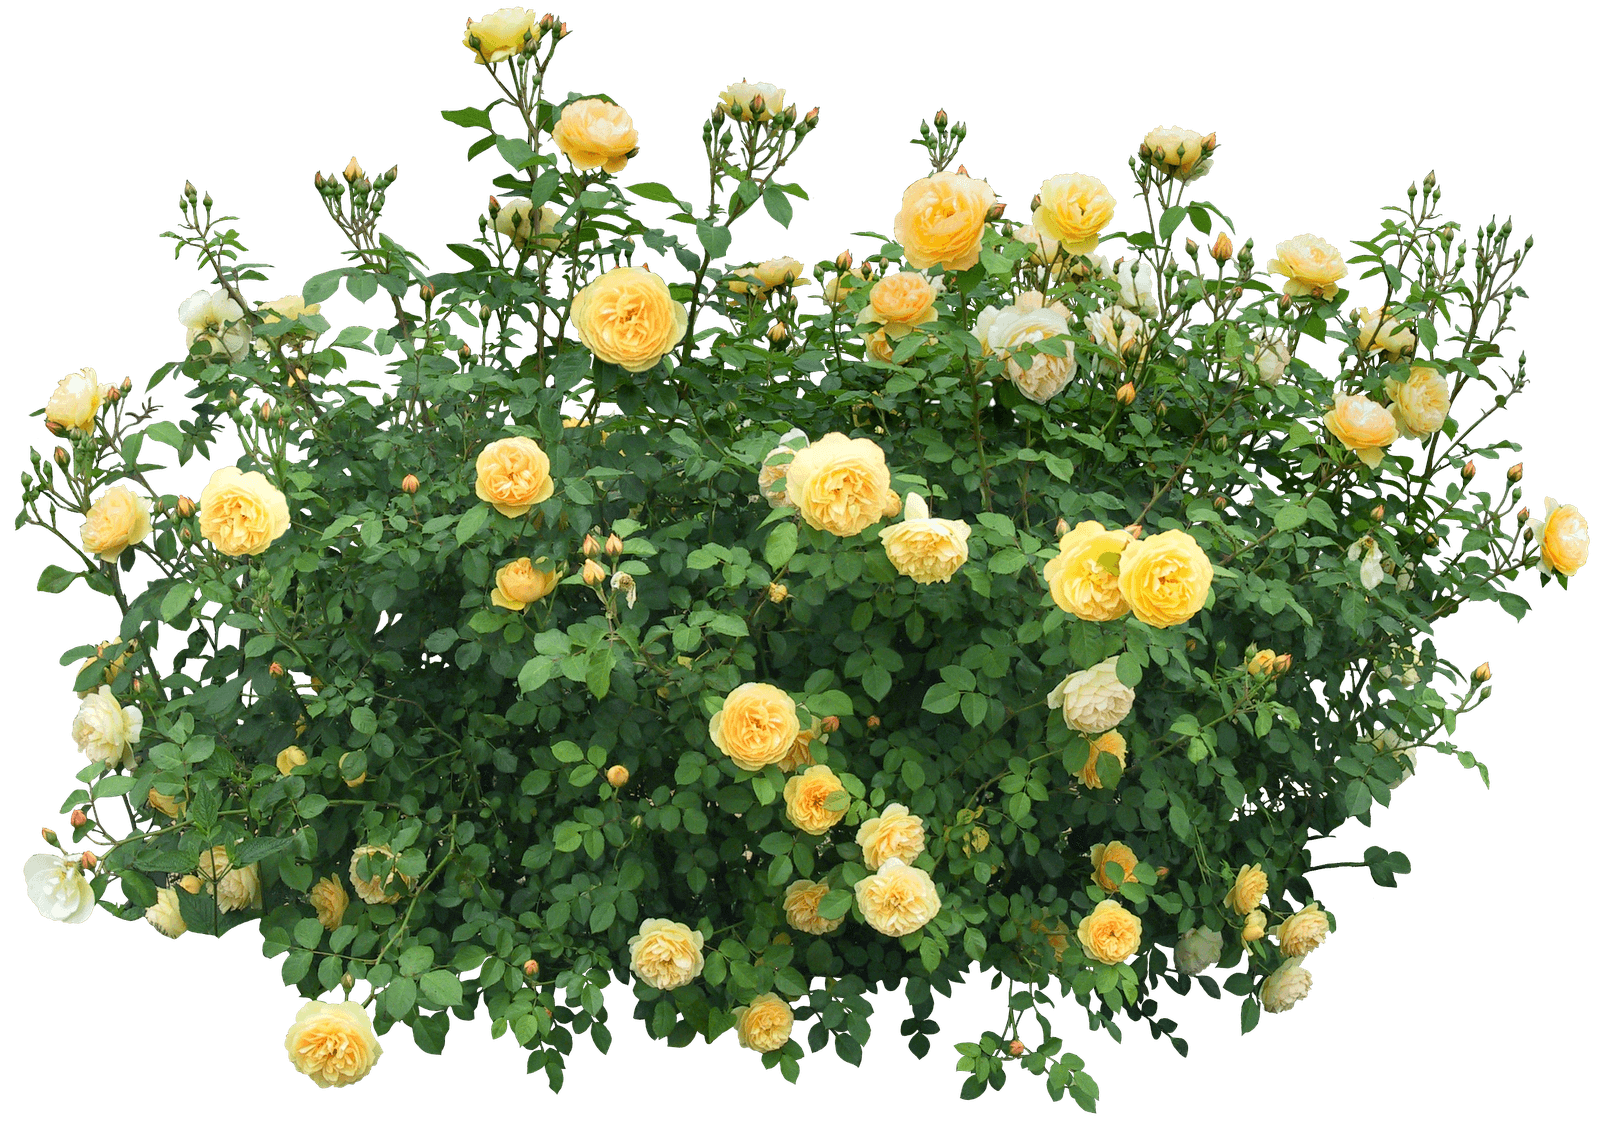 Yellow roses png stickpng. Bush clipart transparent background